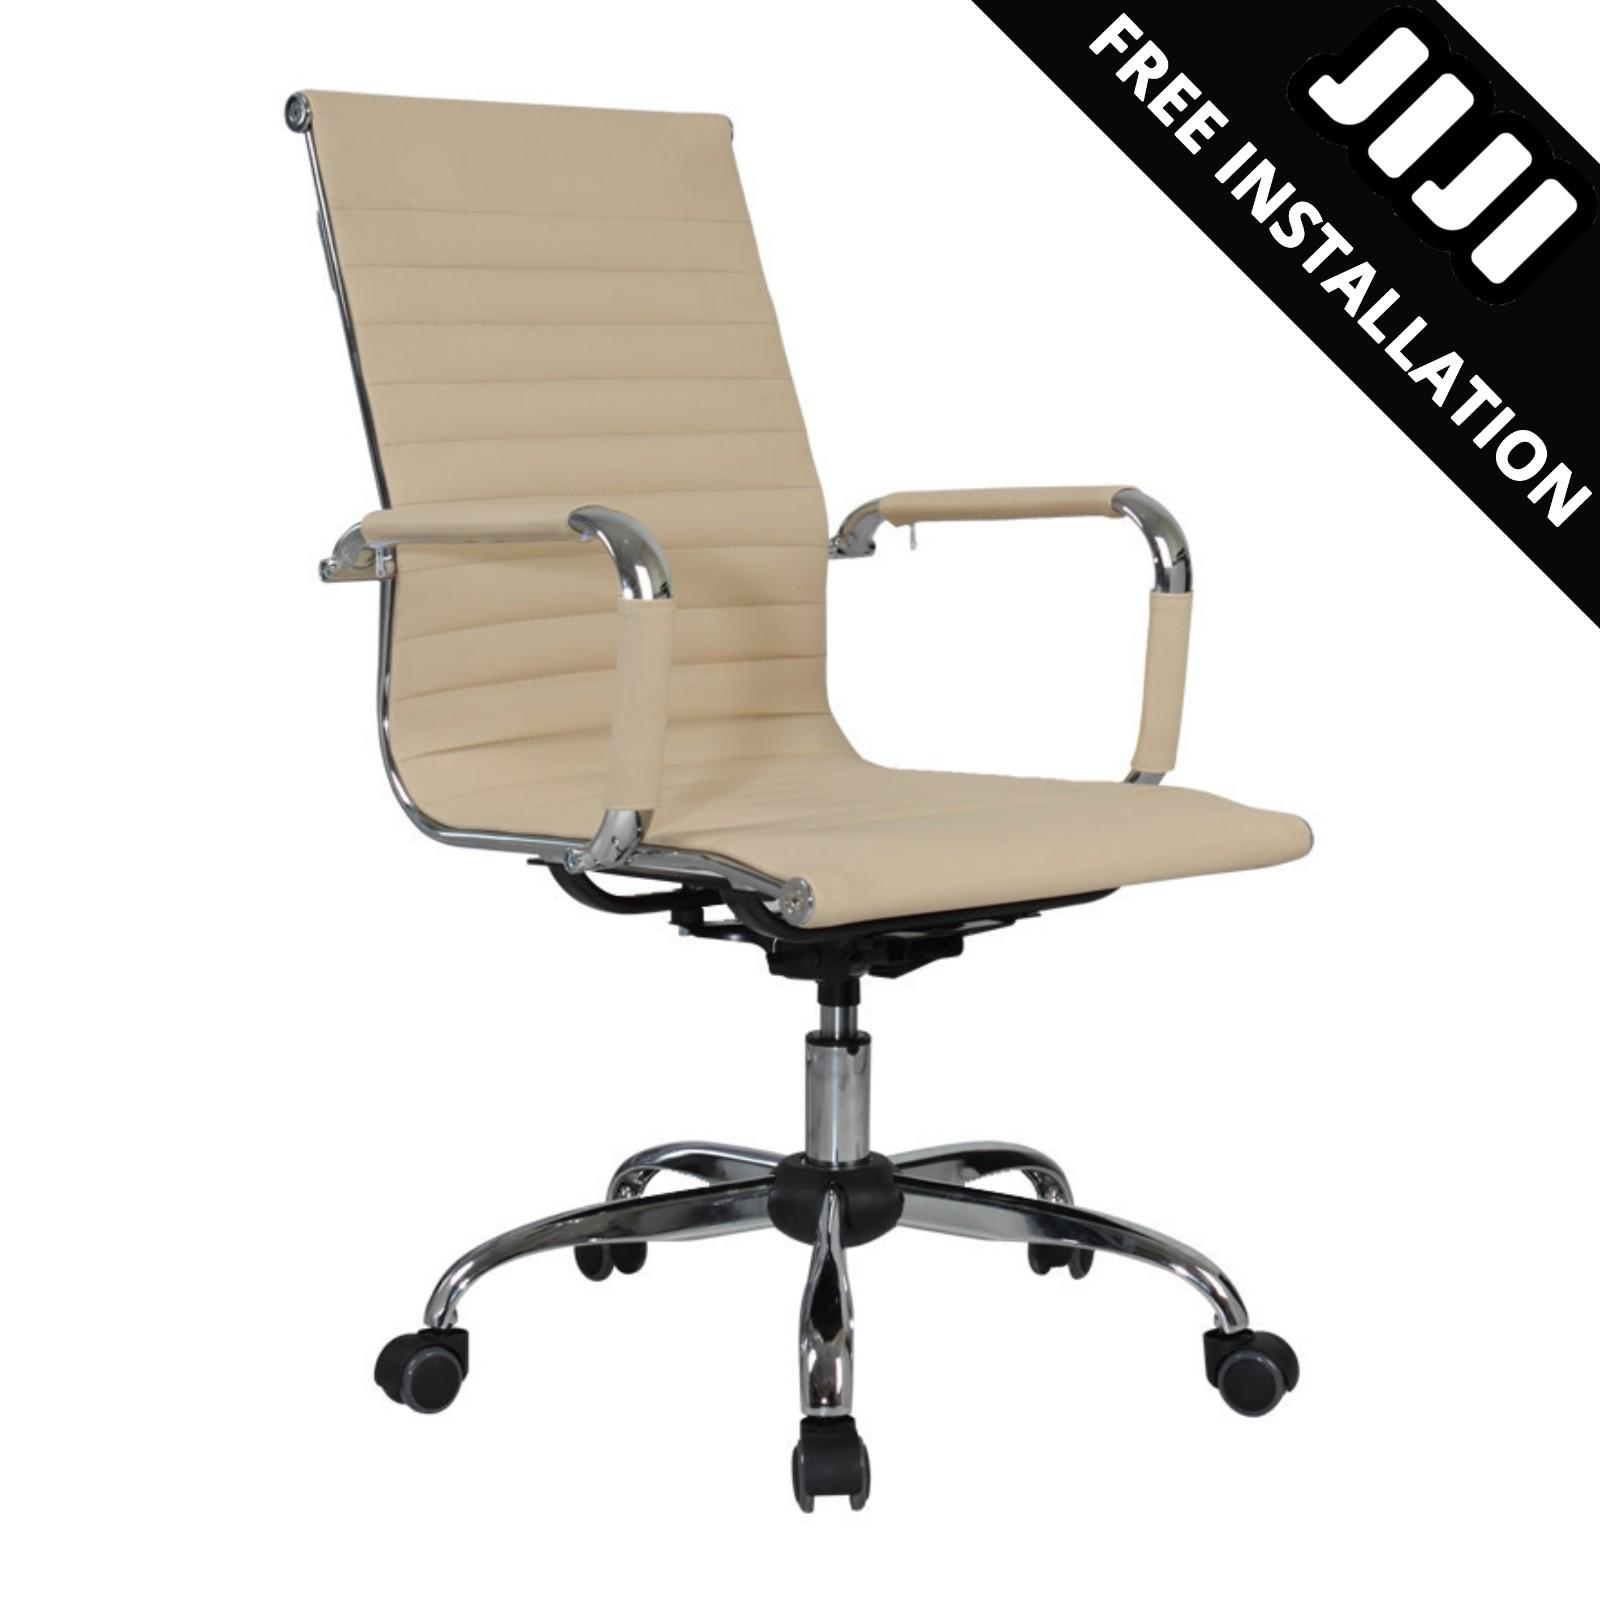 JIJI (Manager Office Chair - LEATHER) (Free Installation) - (Home Office Chair) Office chair/Study chair/Gaming chair/Ergonomic/ Free 12 Months Warranty (SG)